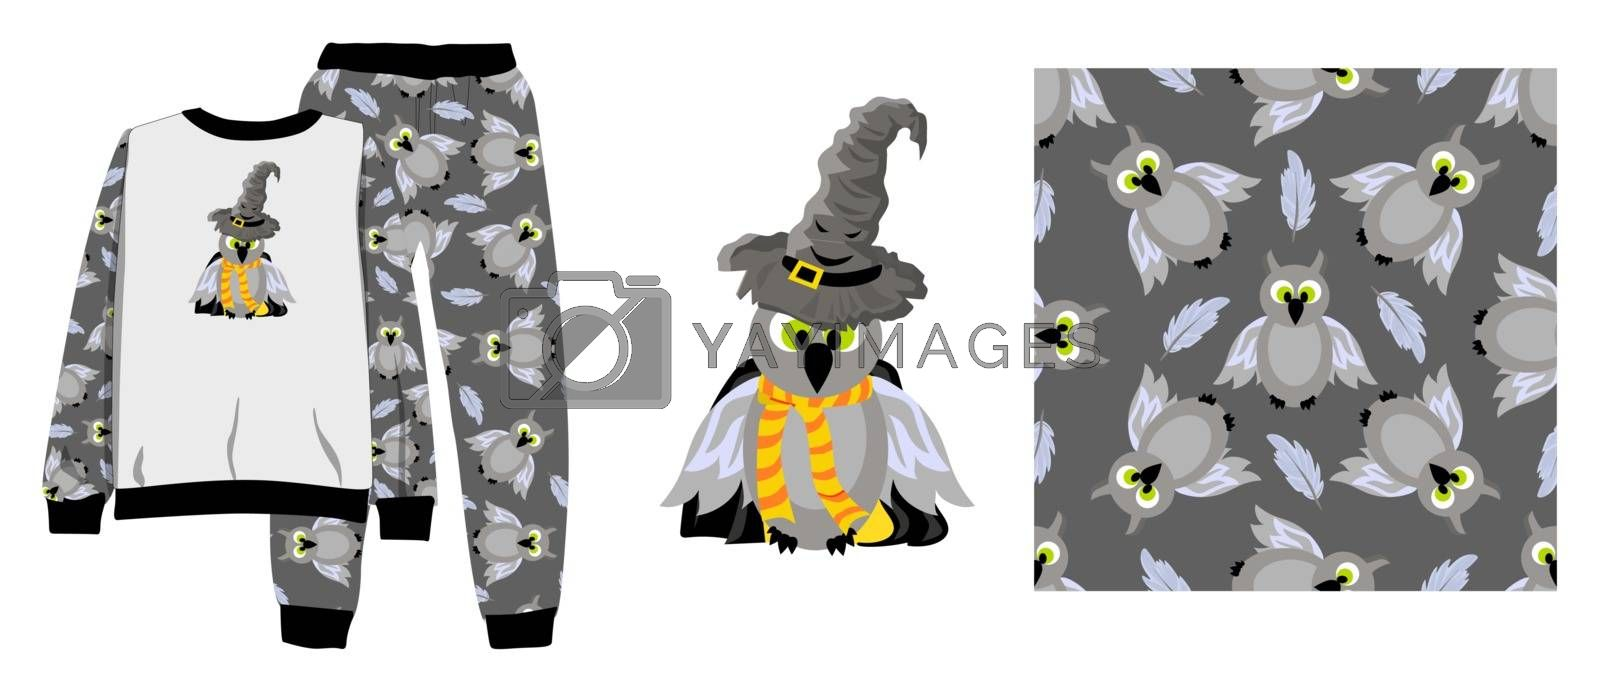 Funny print for baby clothes. Talking hat. Harry Potter movie character. A magical item. Wizard's clothes. T-shirt design. Vector illustration Ready-made textile design kit. Seamless pattern Harry Pot